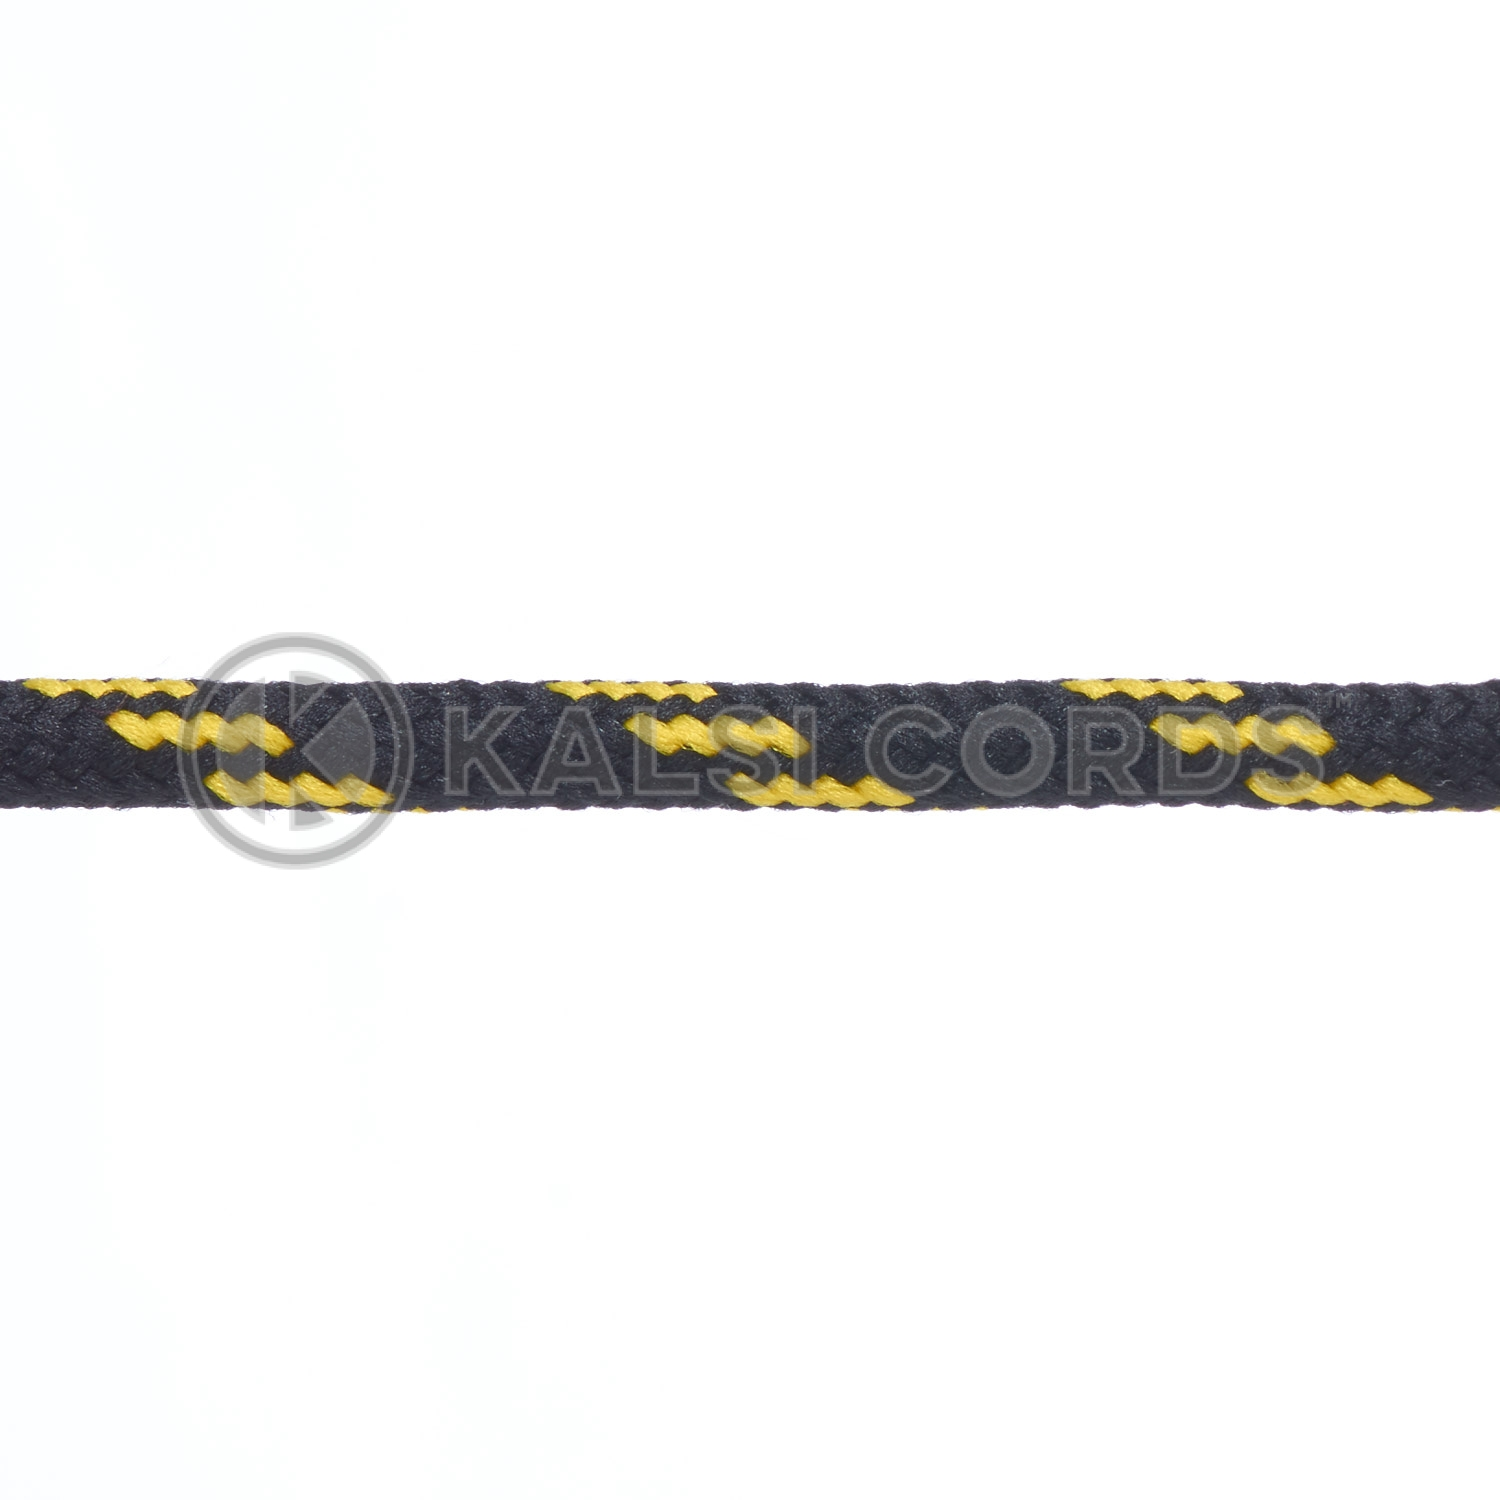 T621 5mm Round Cord Shoe Laces Black Yellow 4 Fleck Kids Trainers Adults Hiking Walking Boots Kalsi Cords